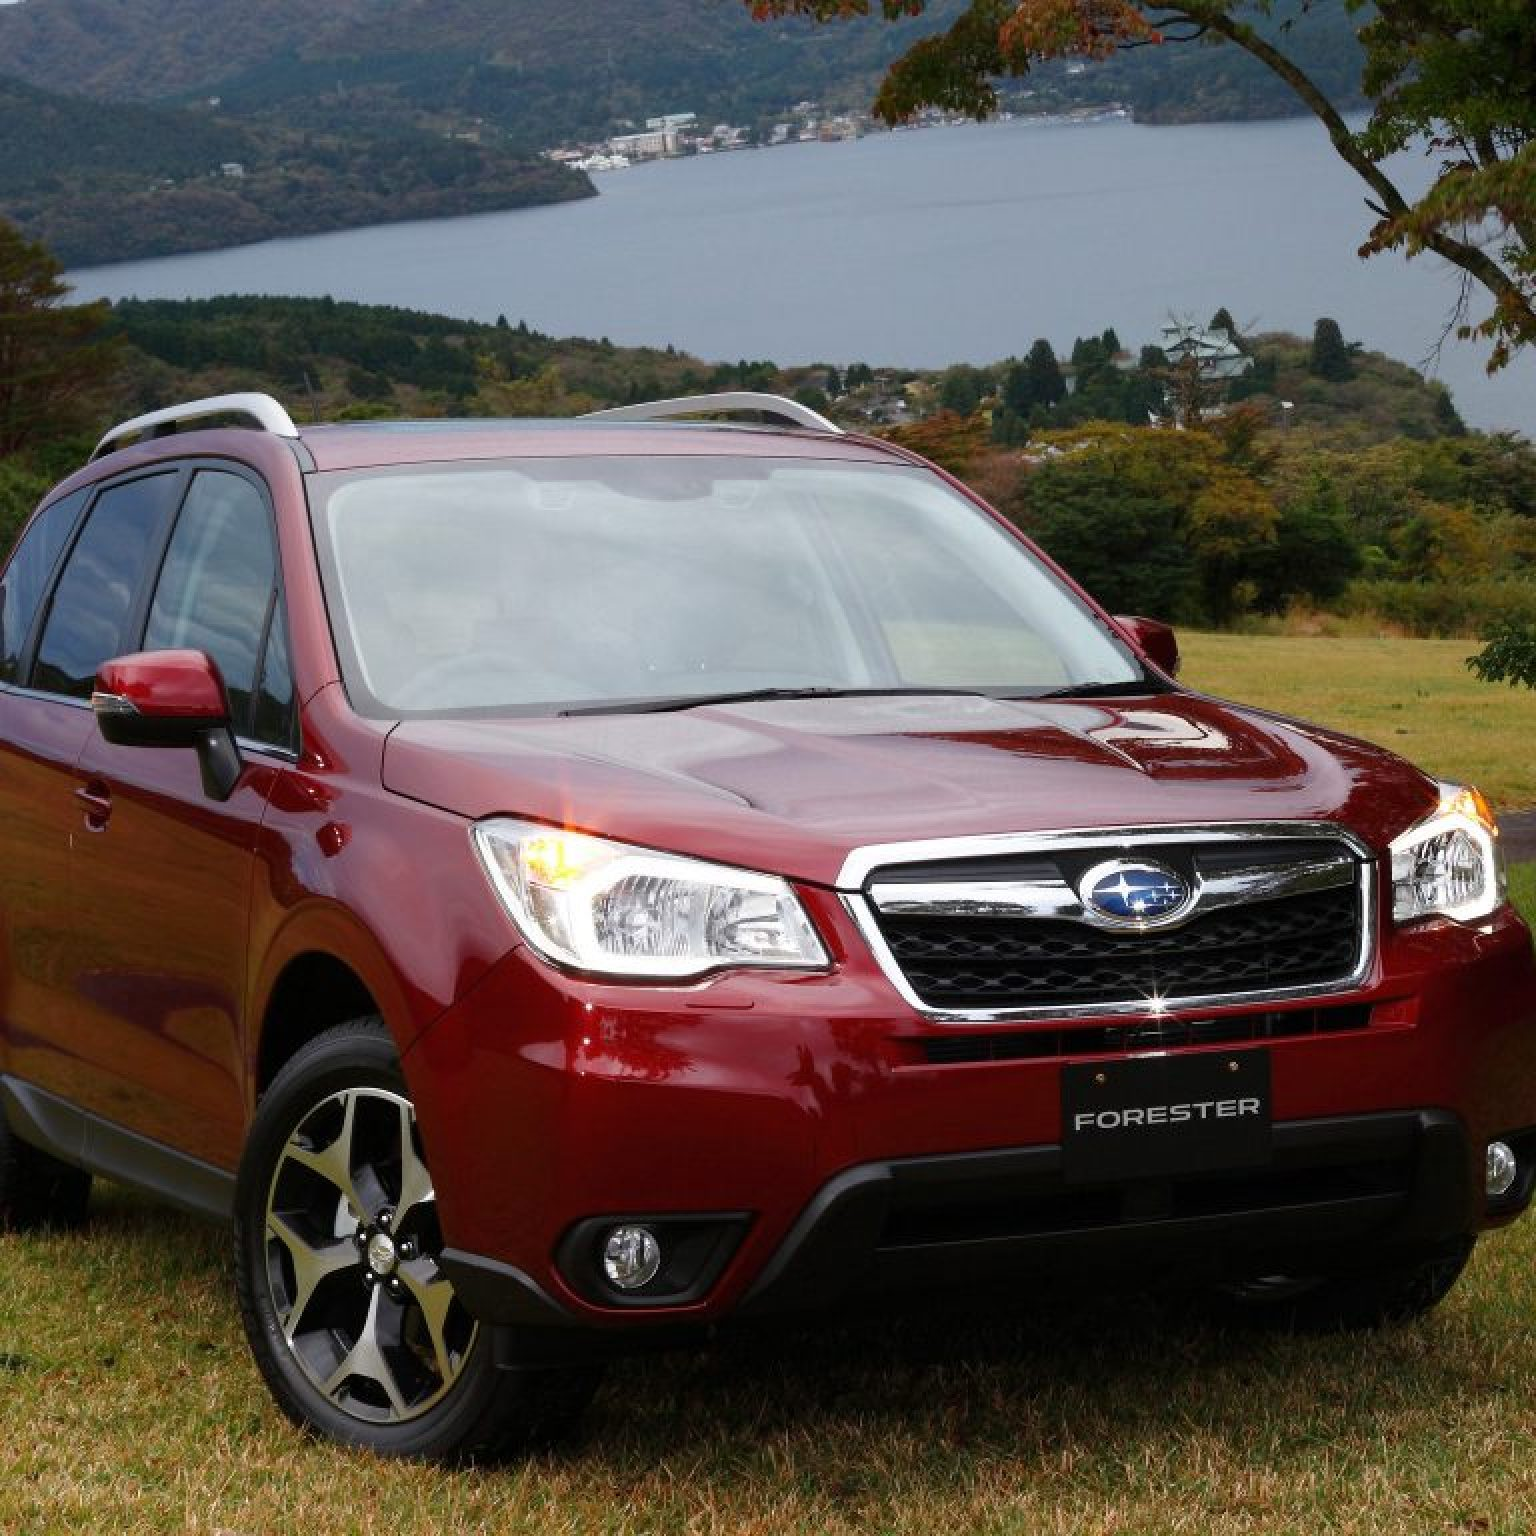 2013 Subaru Forester 2.0i S Japan